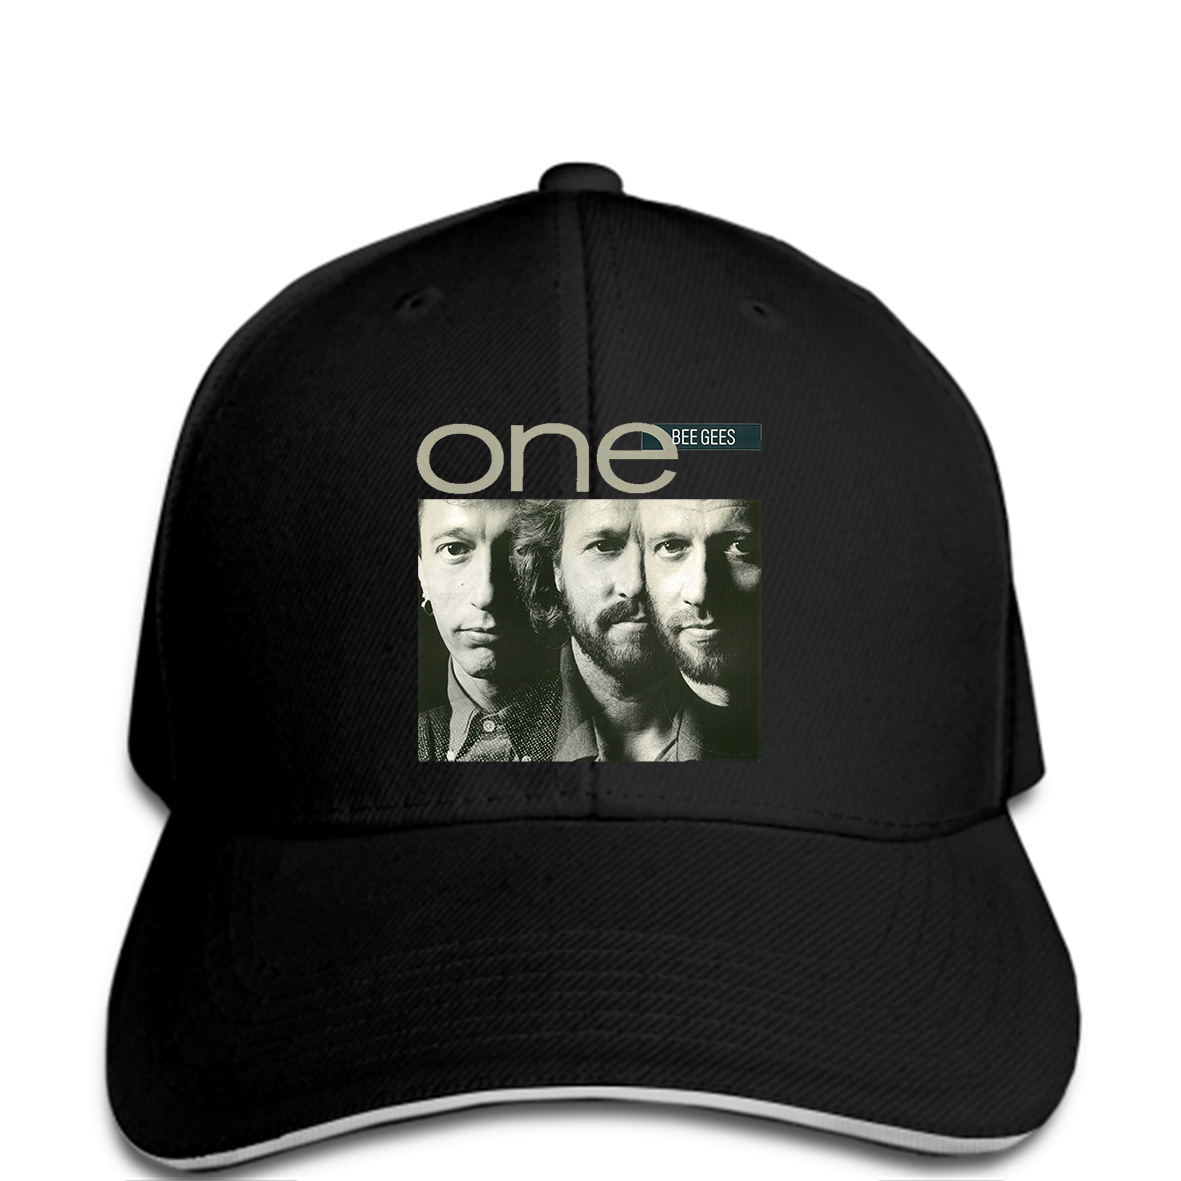 Men's Hats S New Fashion Baseball Cap Bee Gees One Pop Music Group Legend L Casual Sh